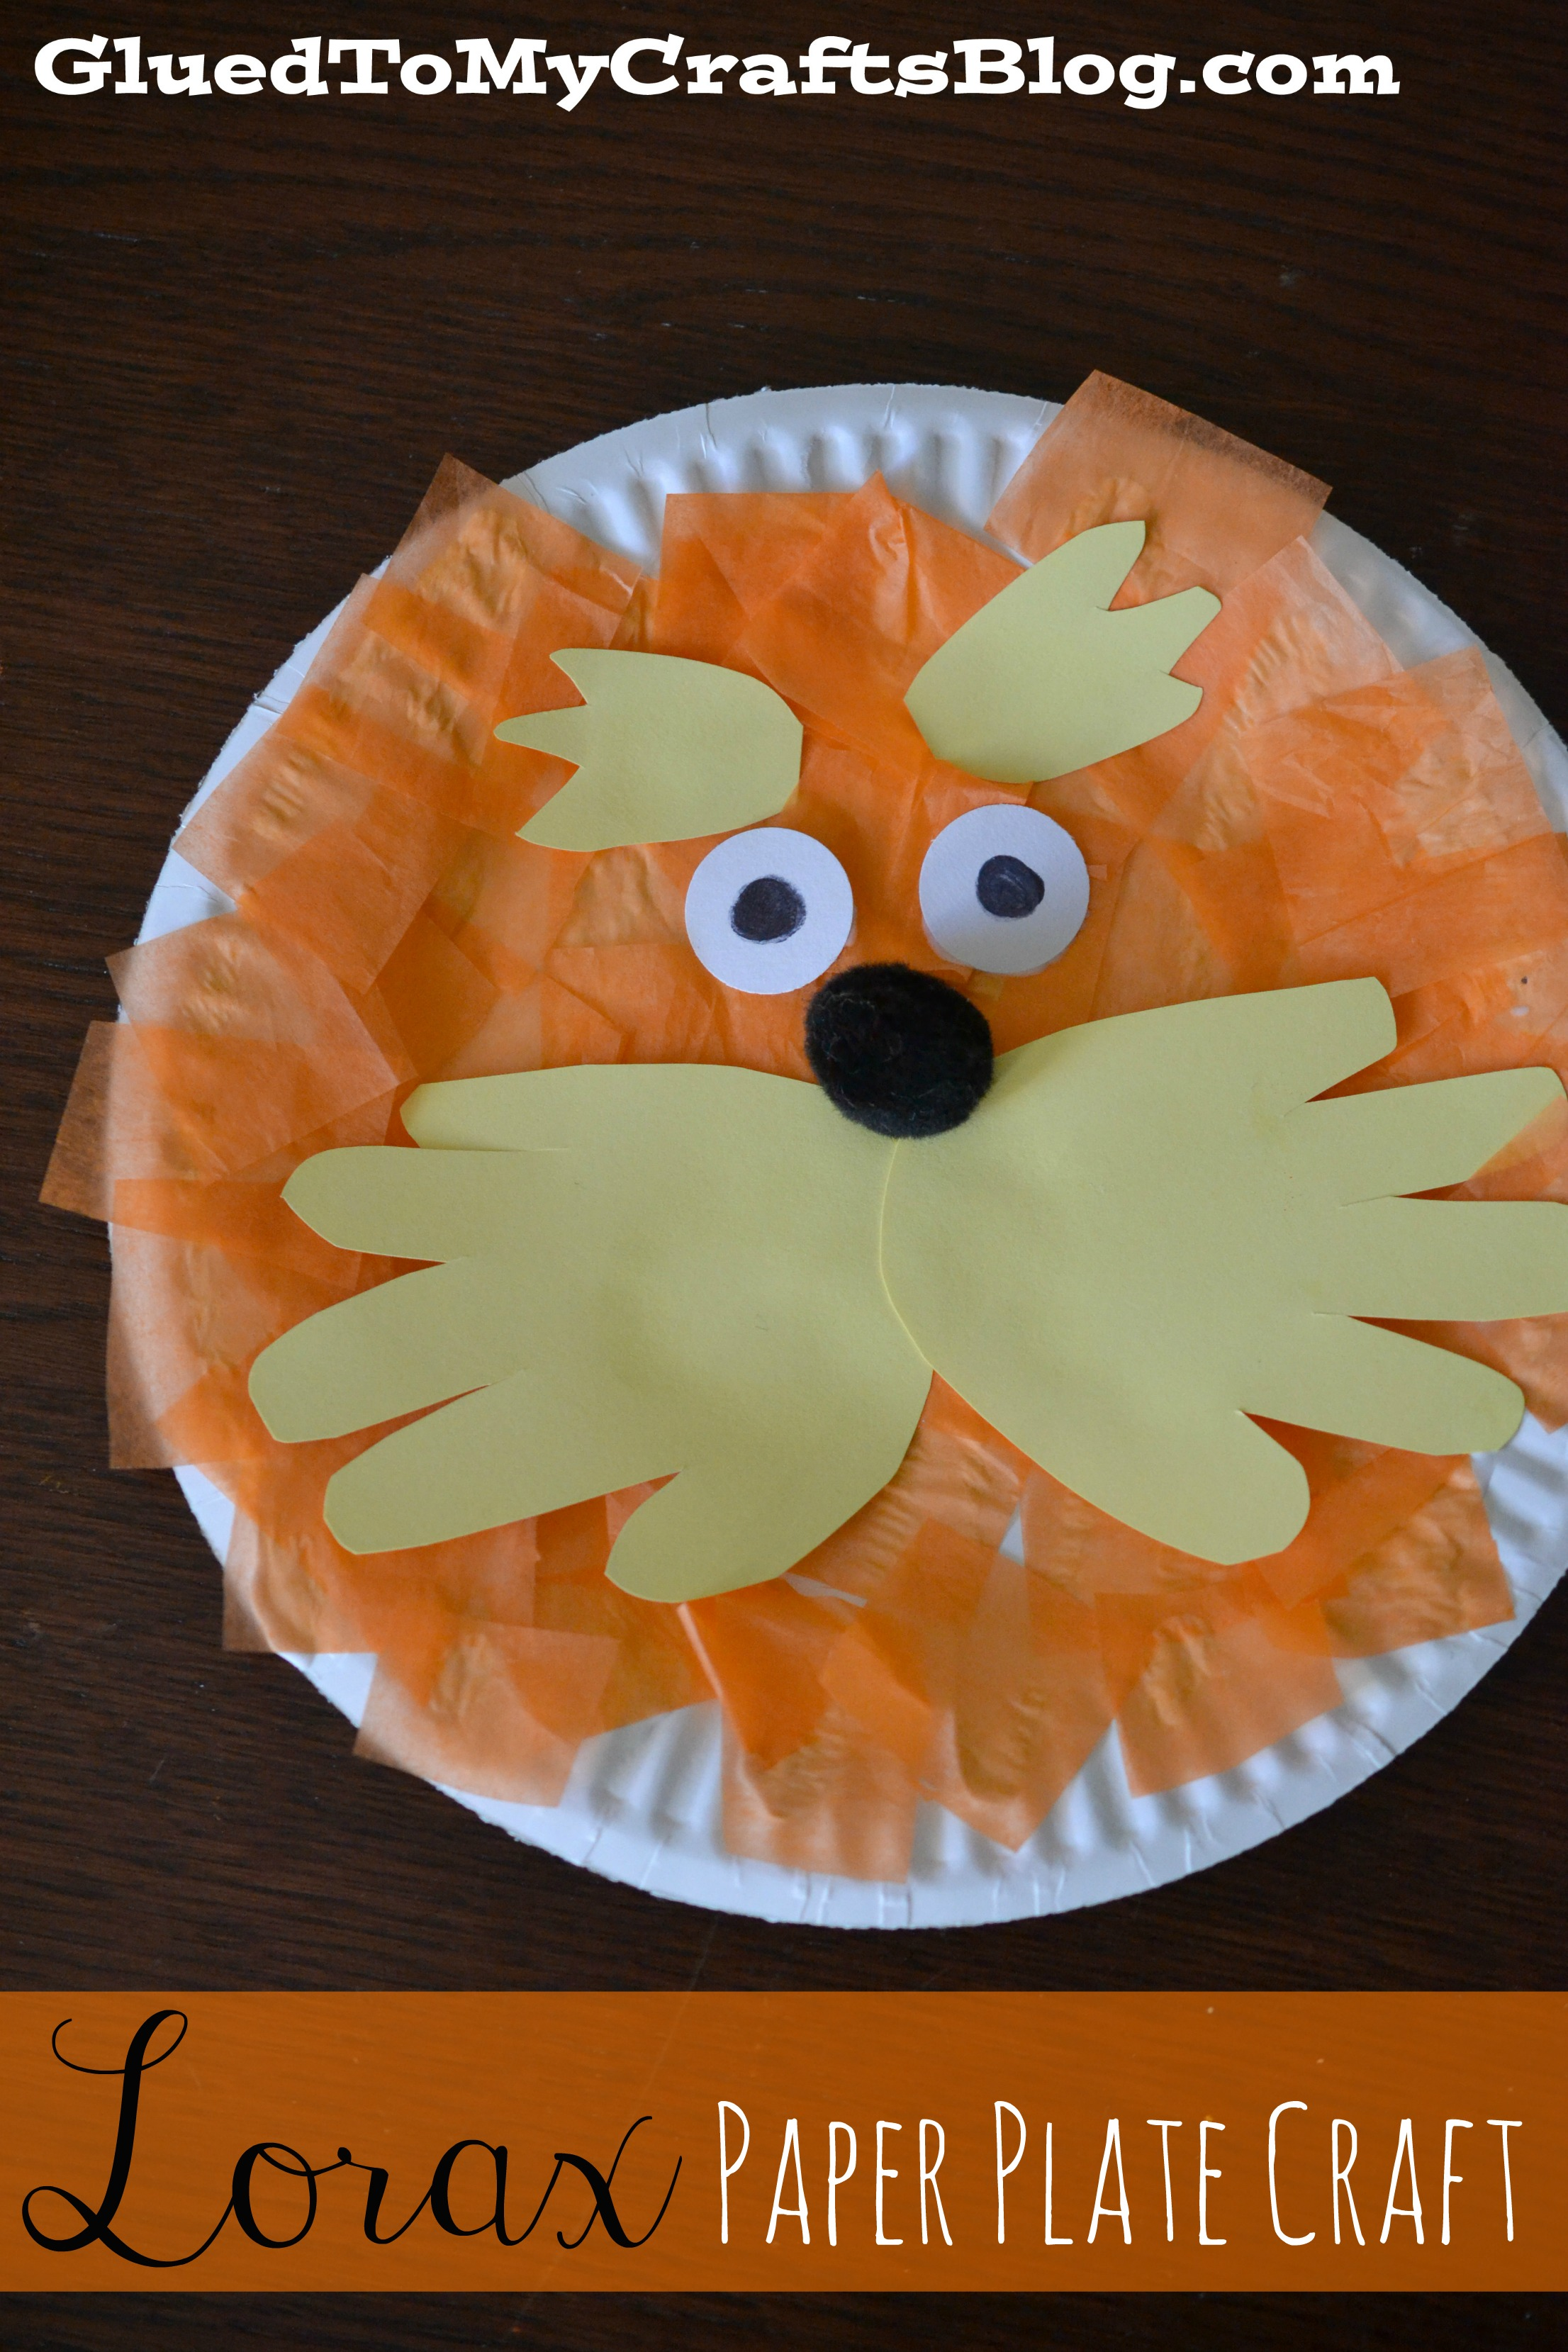 Hot Air Balloon Craft also C A D B C E A Bf A together with A C Bfee Cbad E A Ea Ca also Easter Scene Kid Craft further Dr Seuss Crafts Pinterest X. on pinterest dr seuss crafts for preschoolers